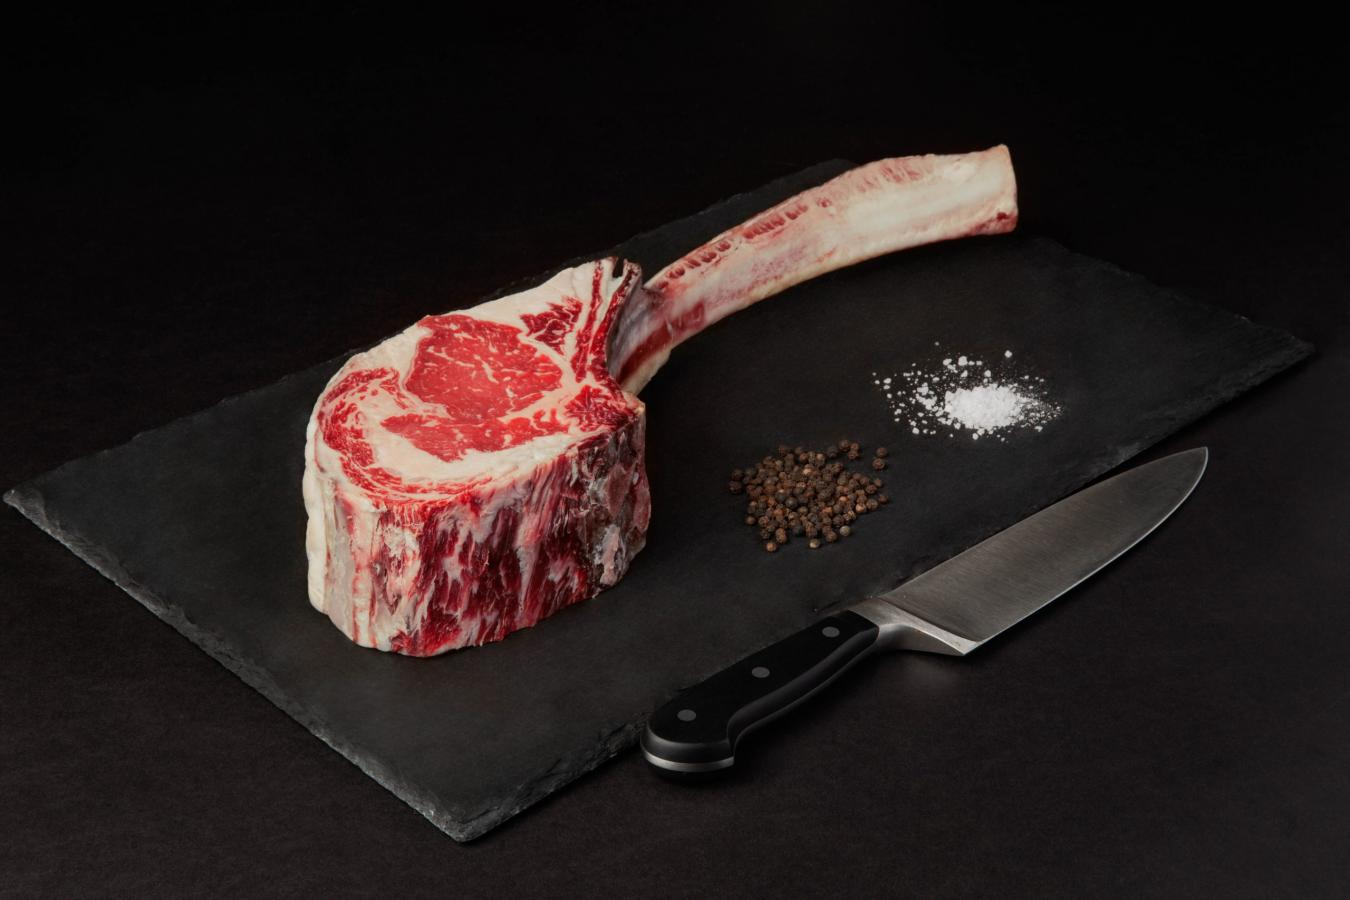 Beef Upper 1/3 Choice Angus Dry Aged Tomahawk